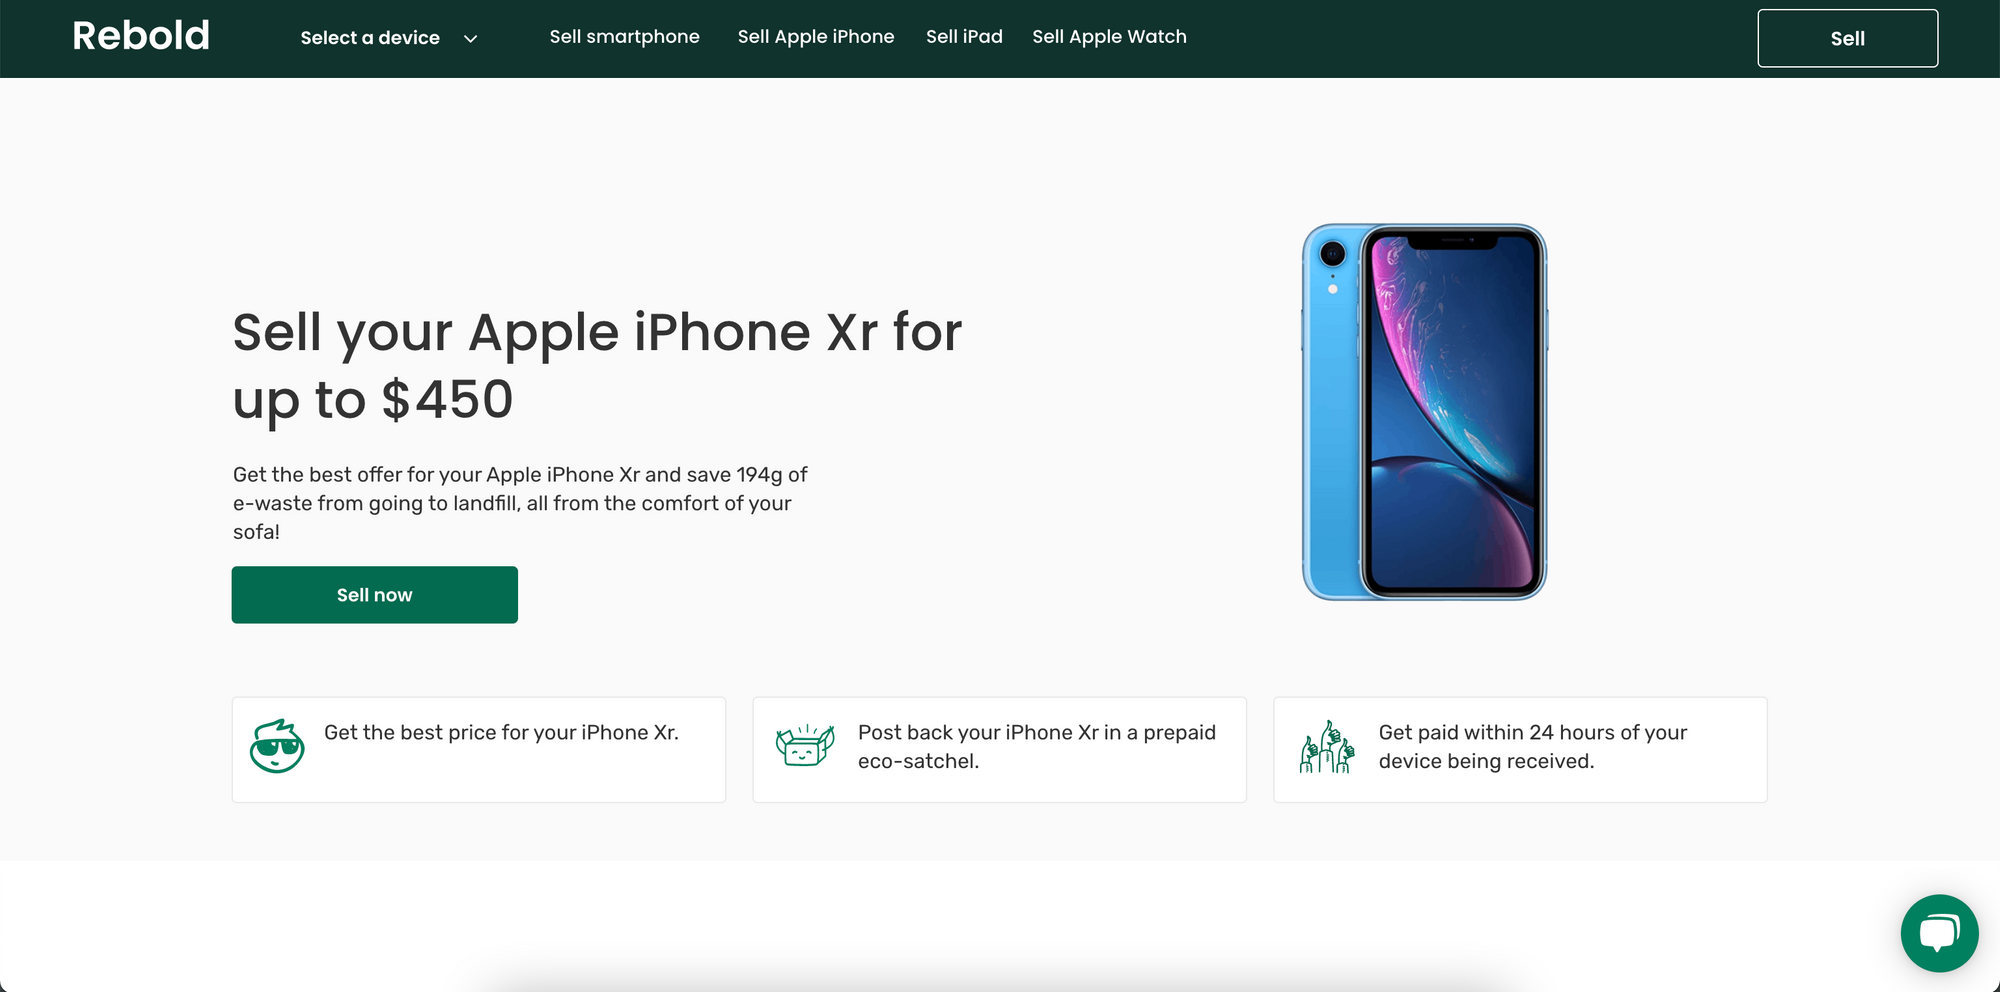 You can sell your iPhone Xr for up to $450 on Rebold.